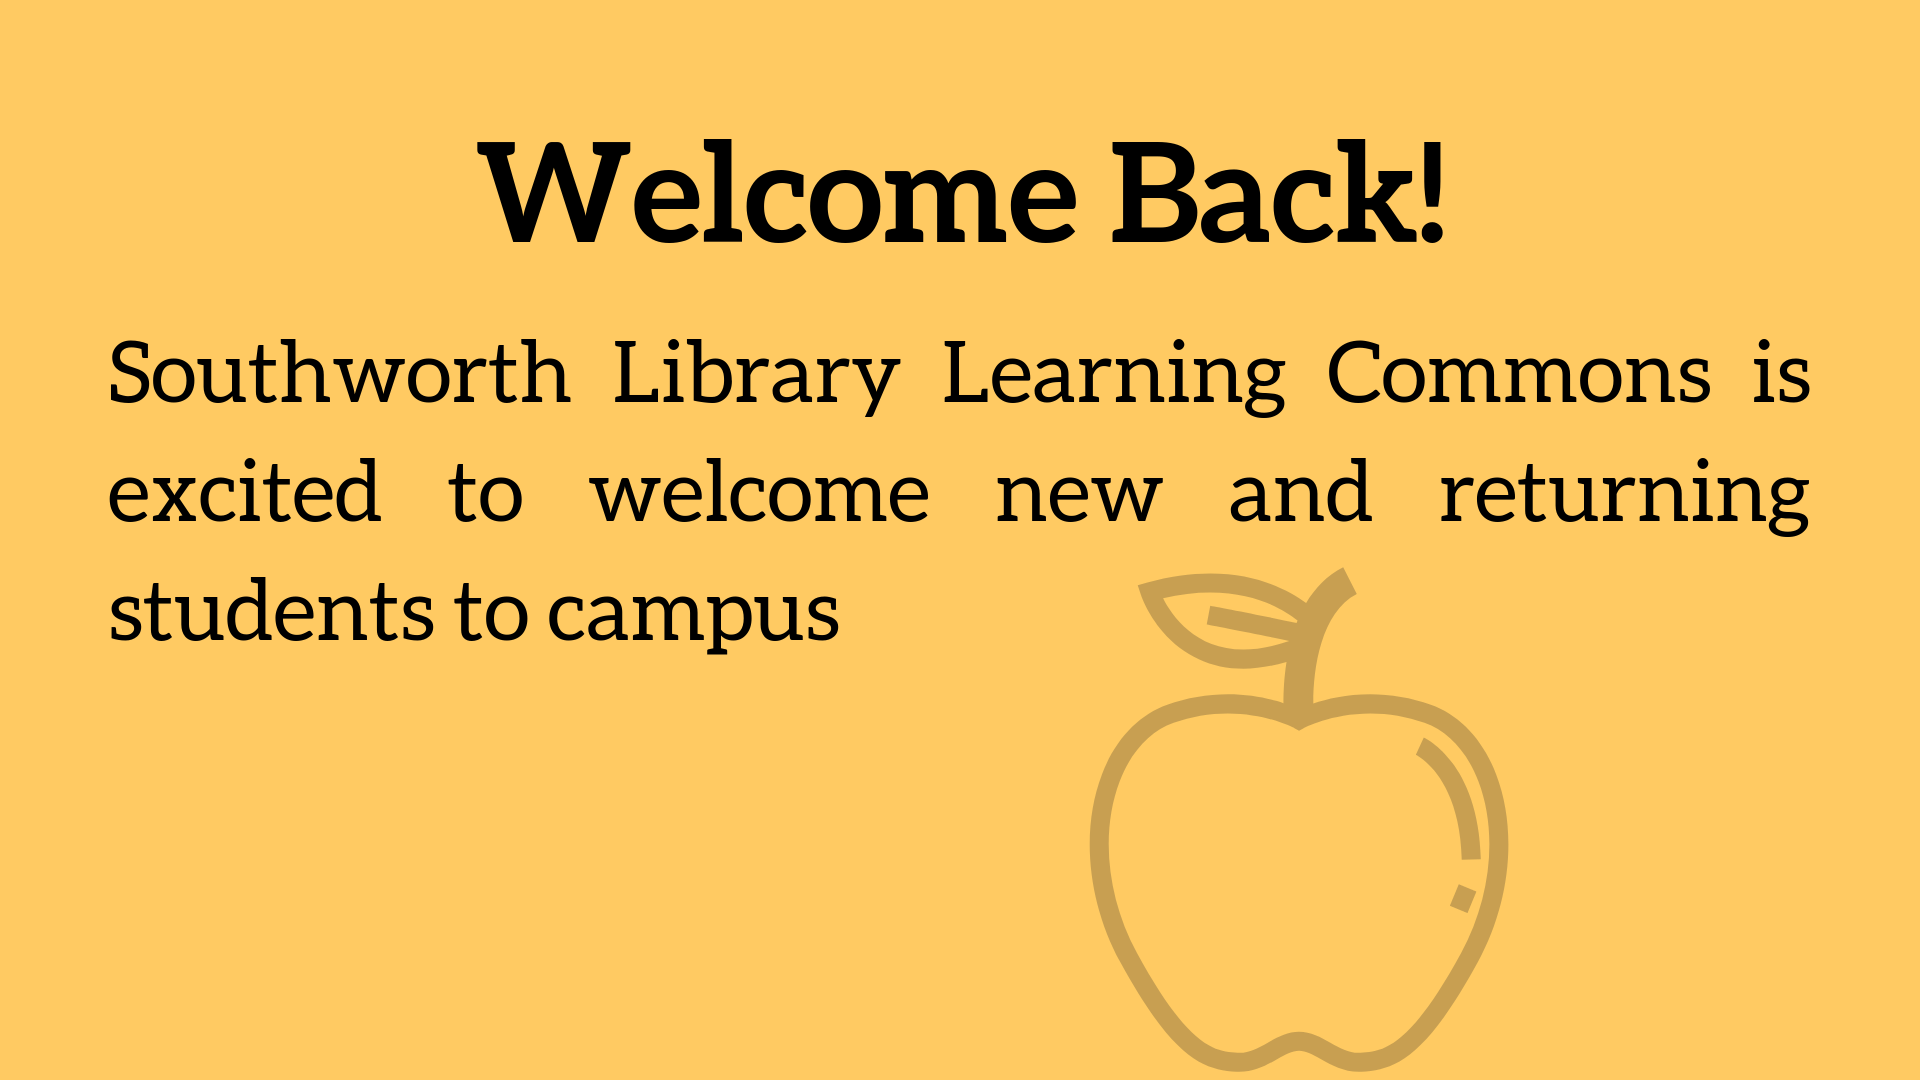 Welcome Back! Southworth Library Learning Commons is excited to welcome new and returning students to campus